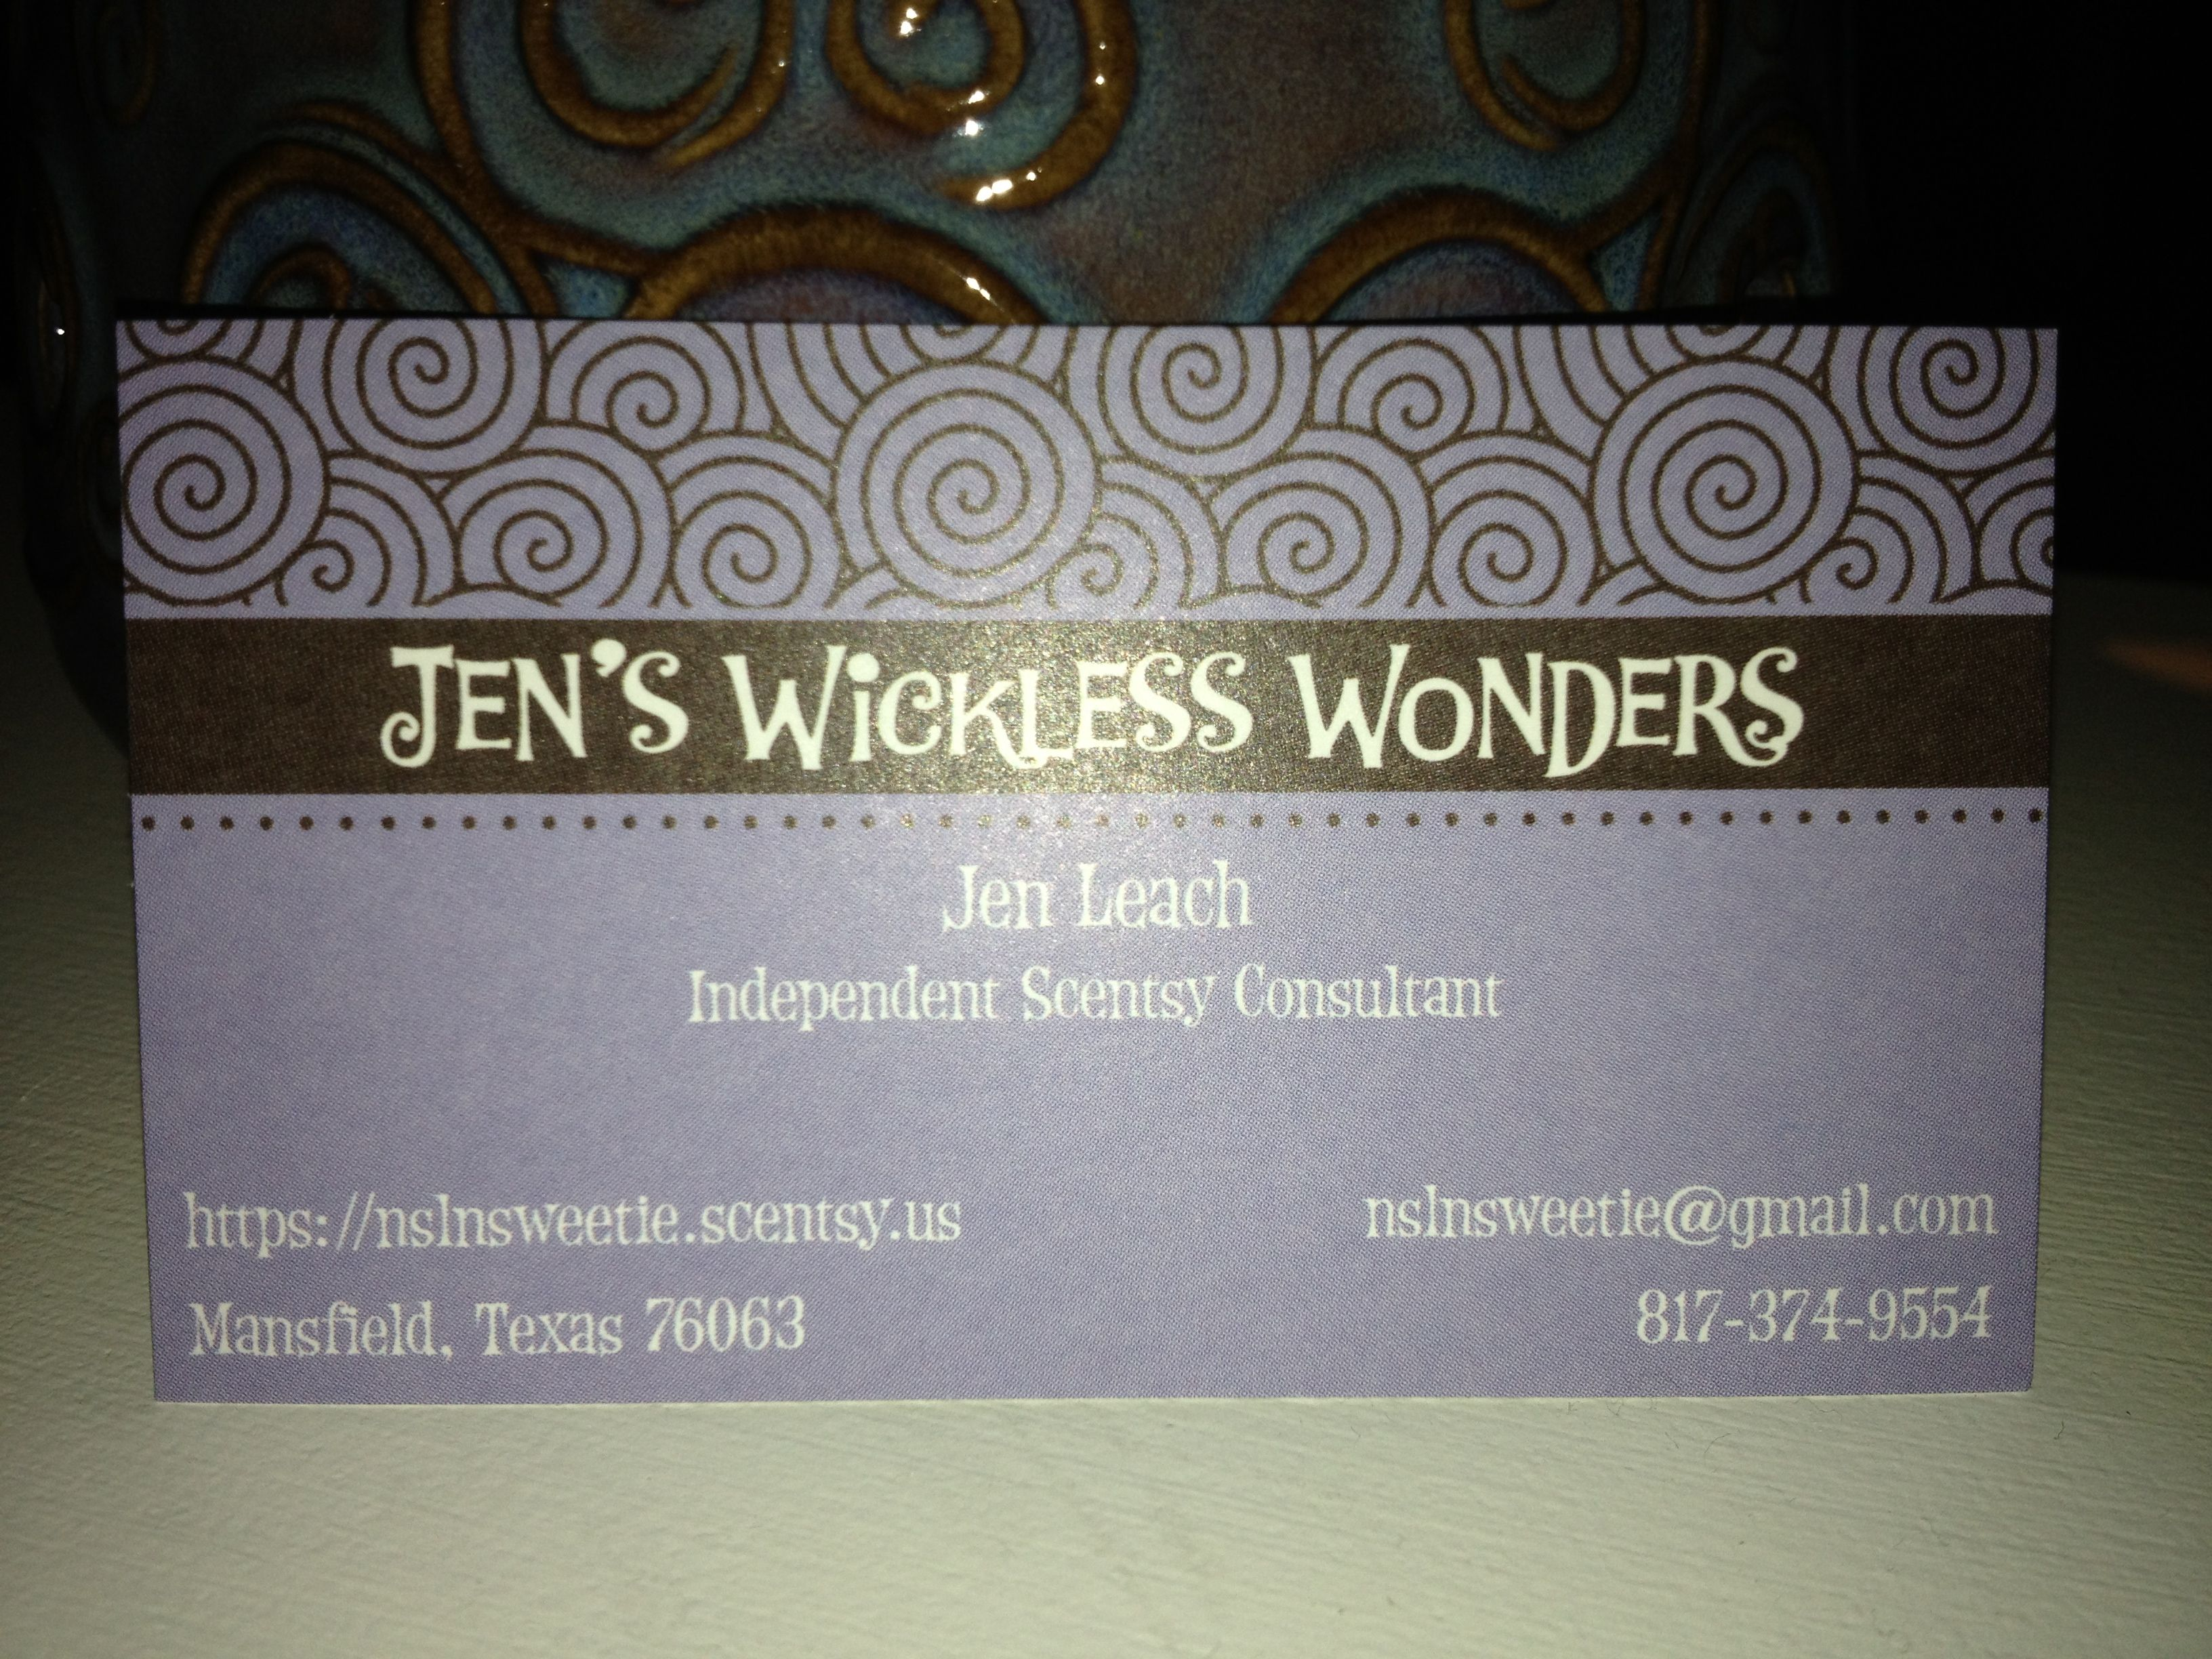 Scentsy business card ideas Scentsy ideas